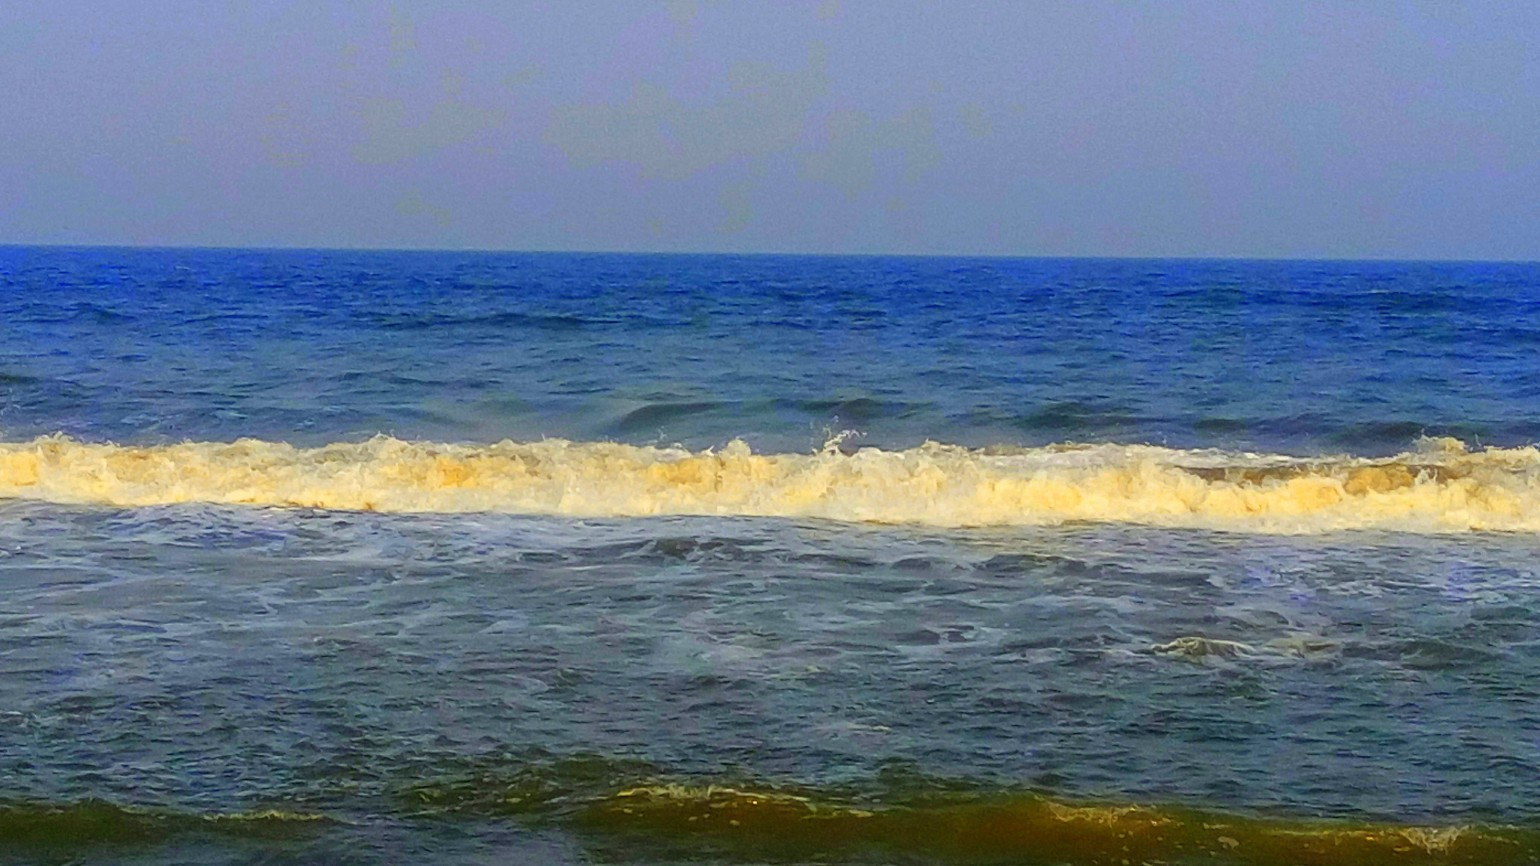 Blue - A picture of the Seawater blue